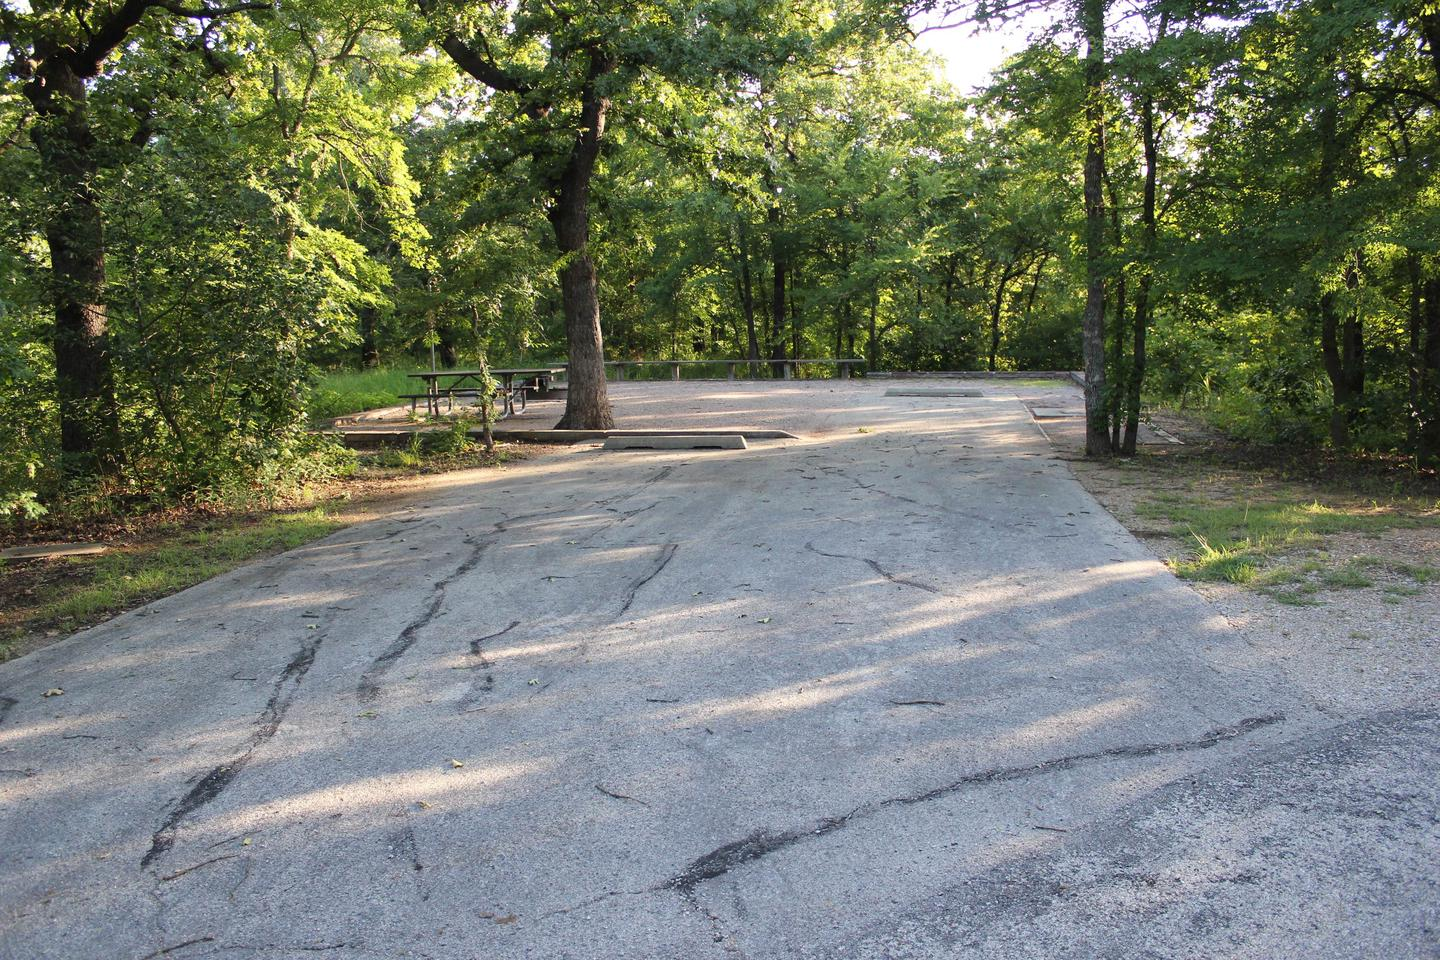 Site #49 Point Campground Image 3Site #49 Point Campground